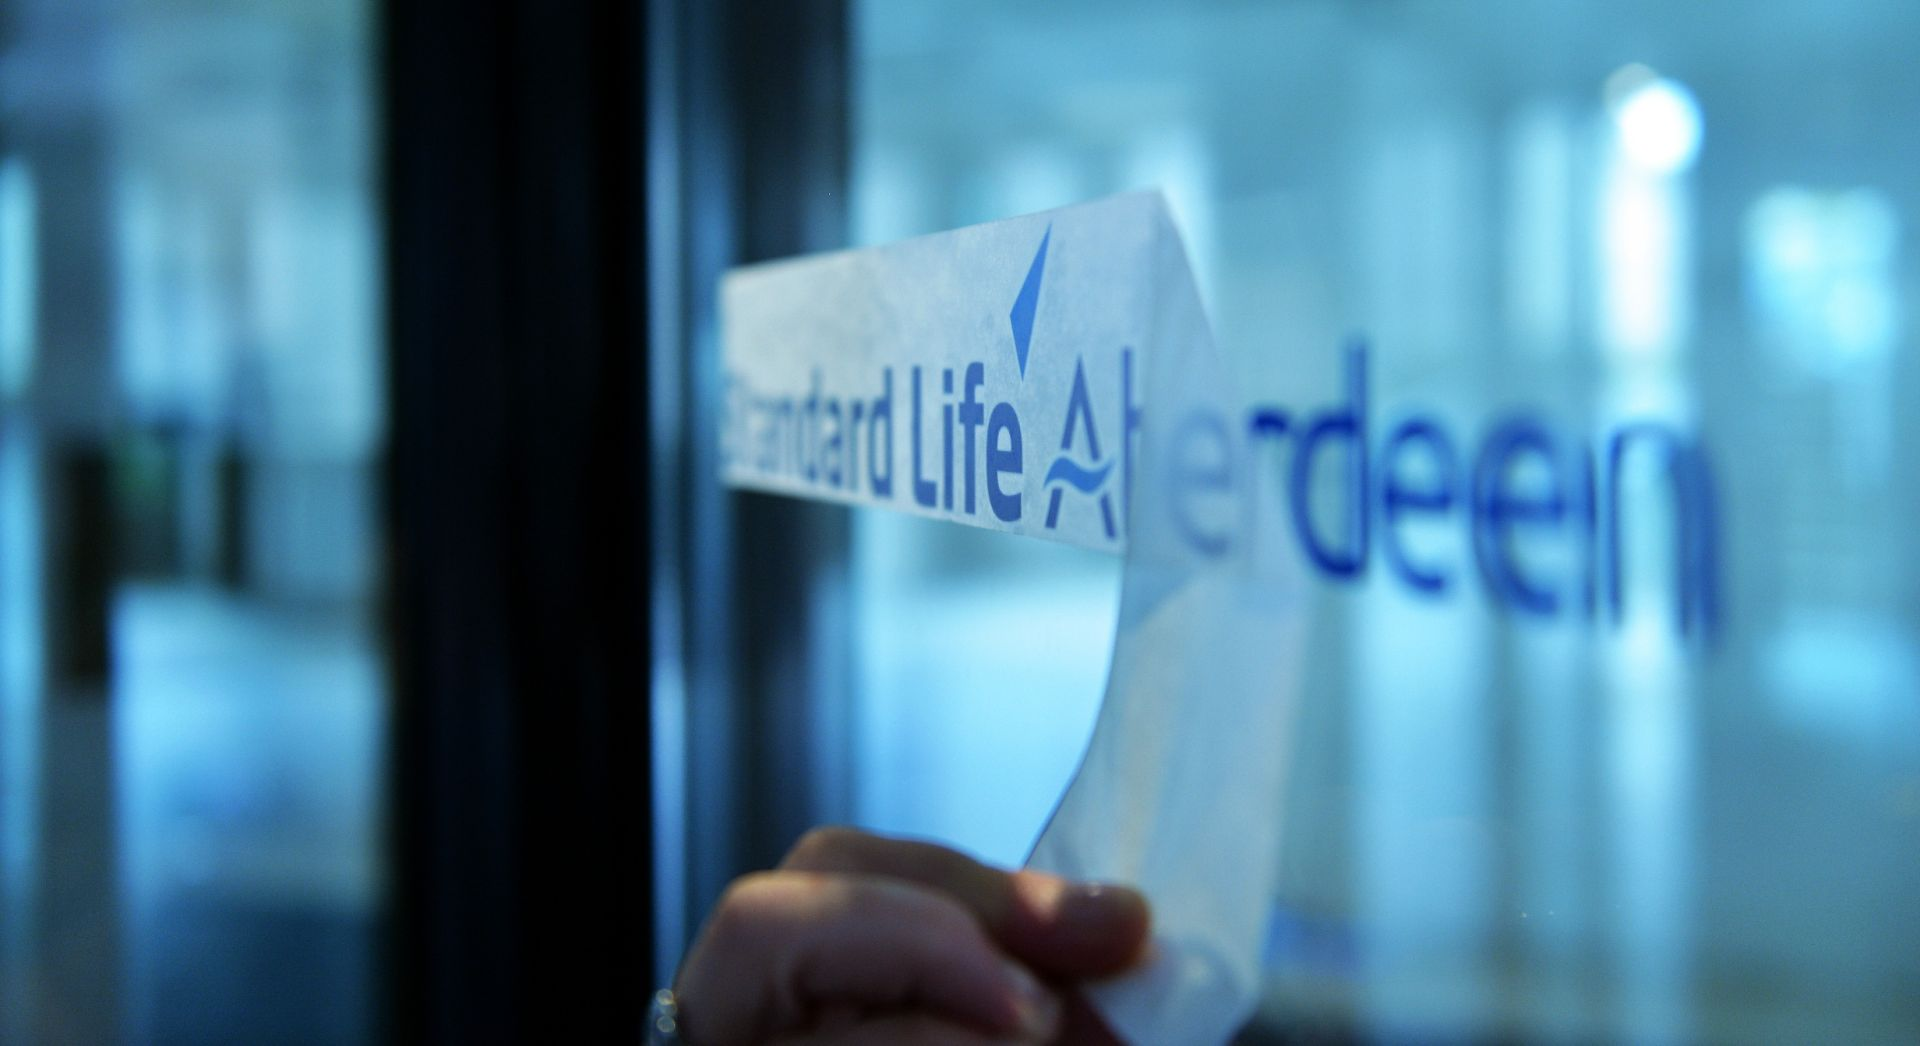 Standard Life Aberdeen logo on an office window